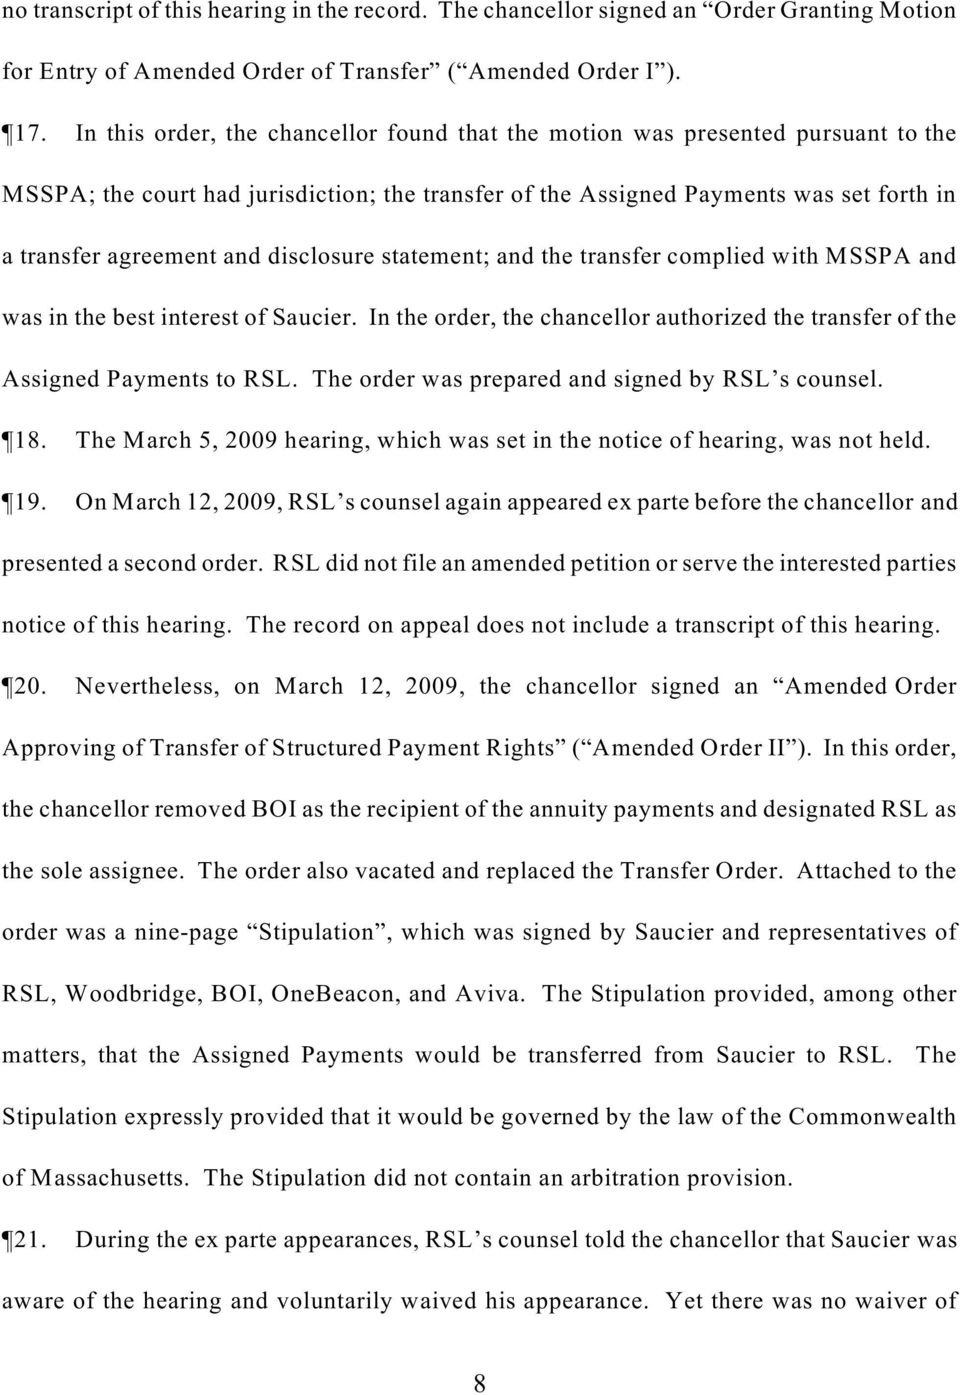 disclosure statement; and the transfer complied with MSSPA and was in the best interest of Saucier. In the order, the chancellor authorized the transfer of the Assigned Payments to RSL.